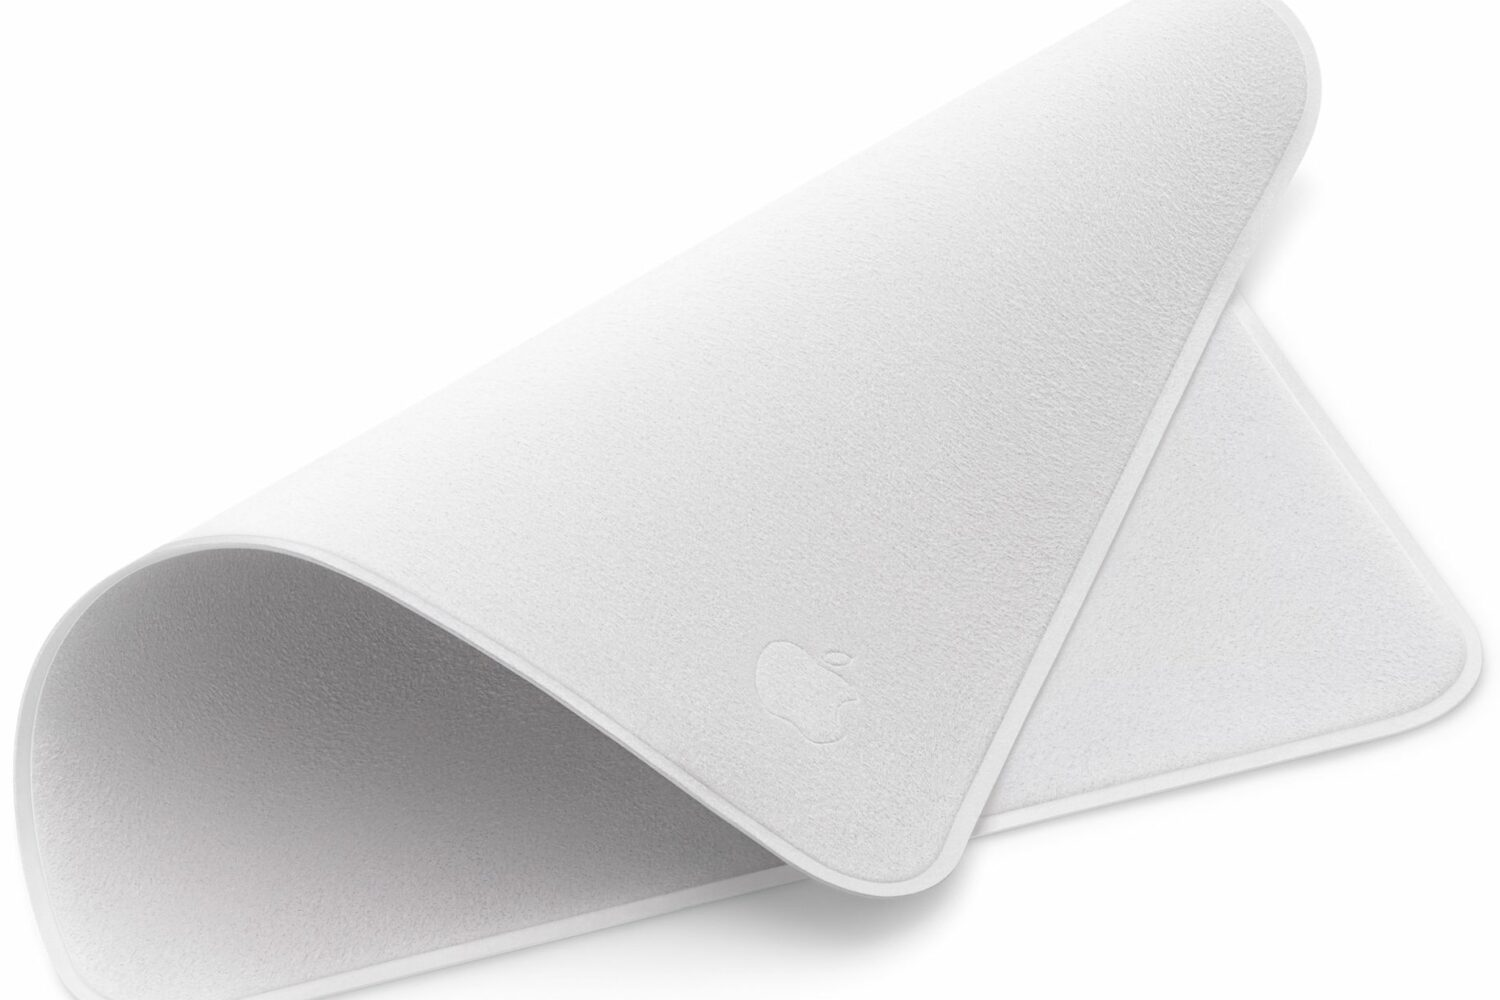 An image of Apple's $29 polishing cloth for cleaning Apple displays and devices